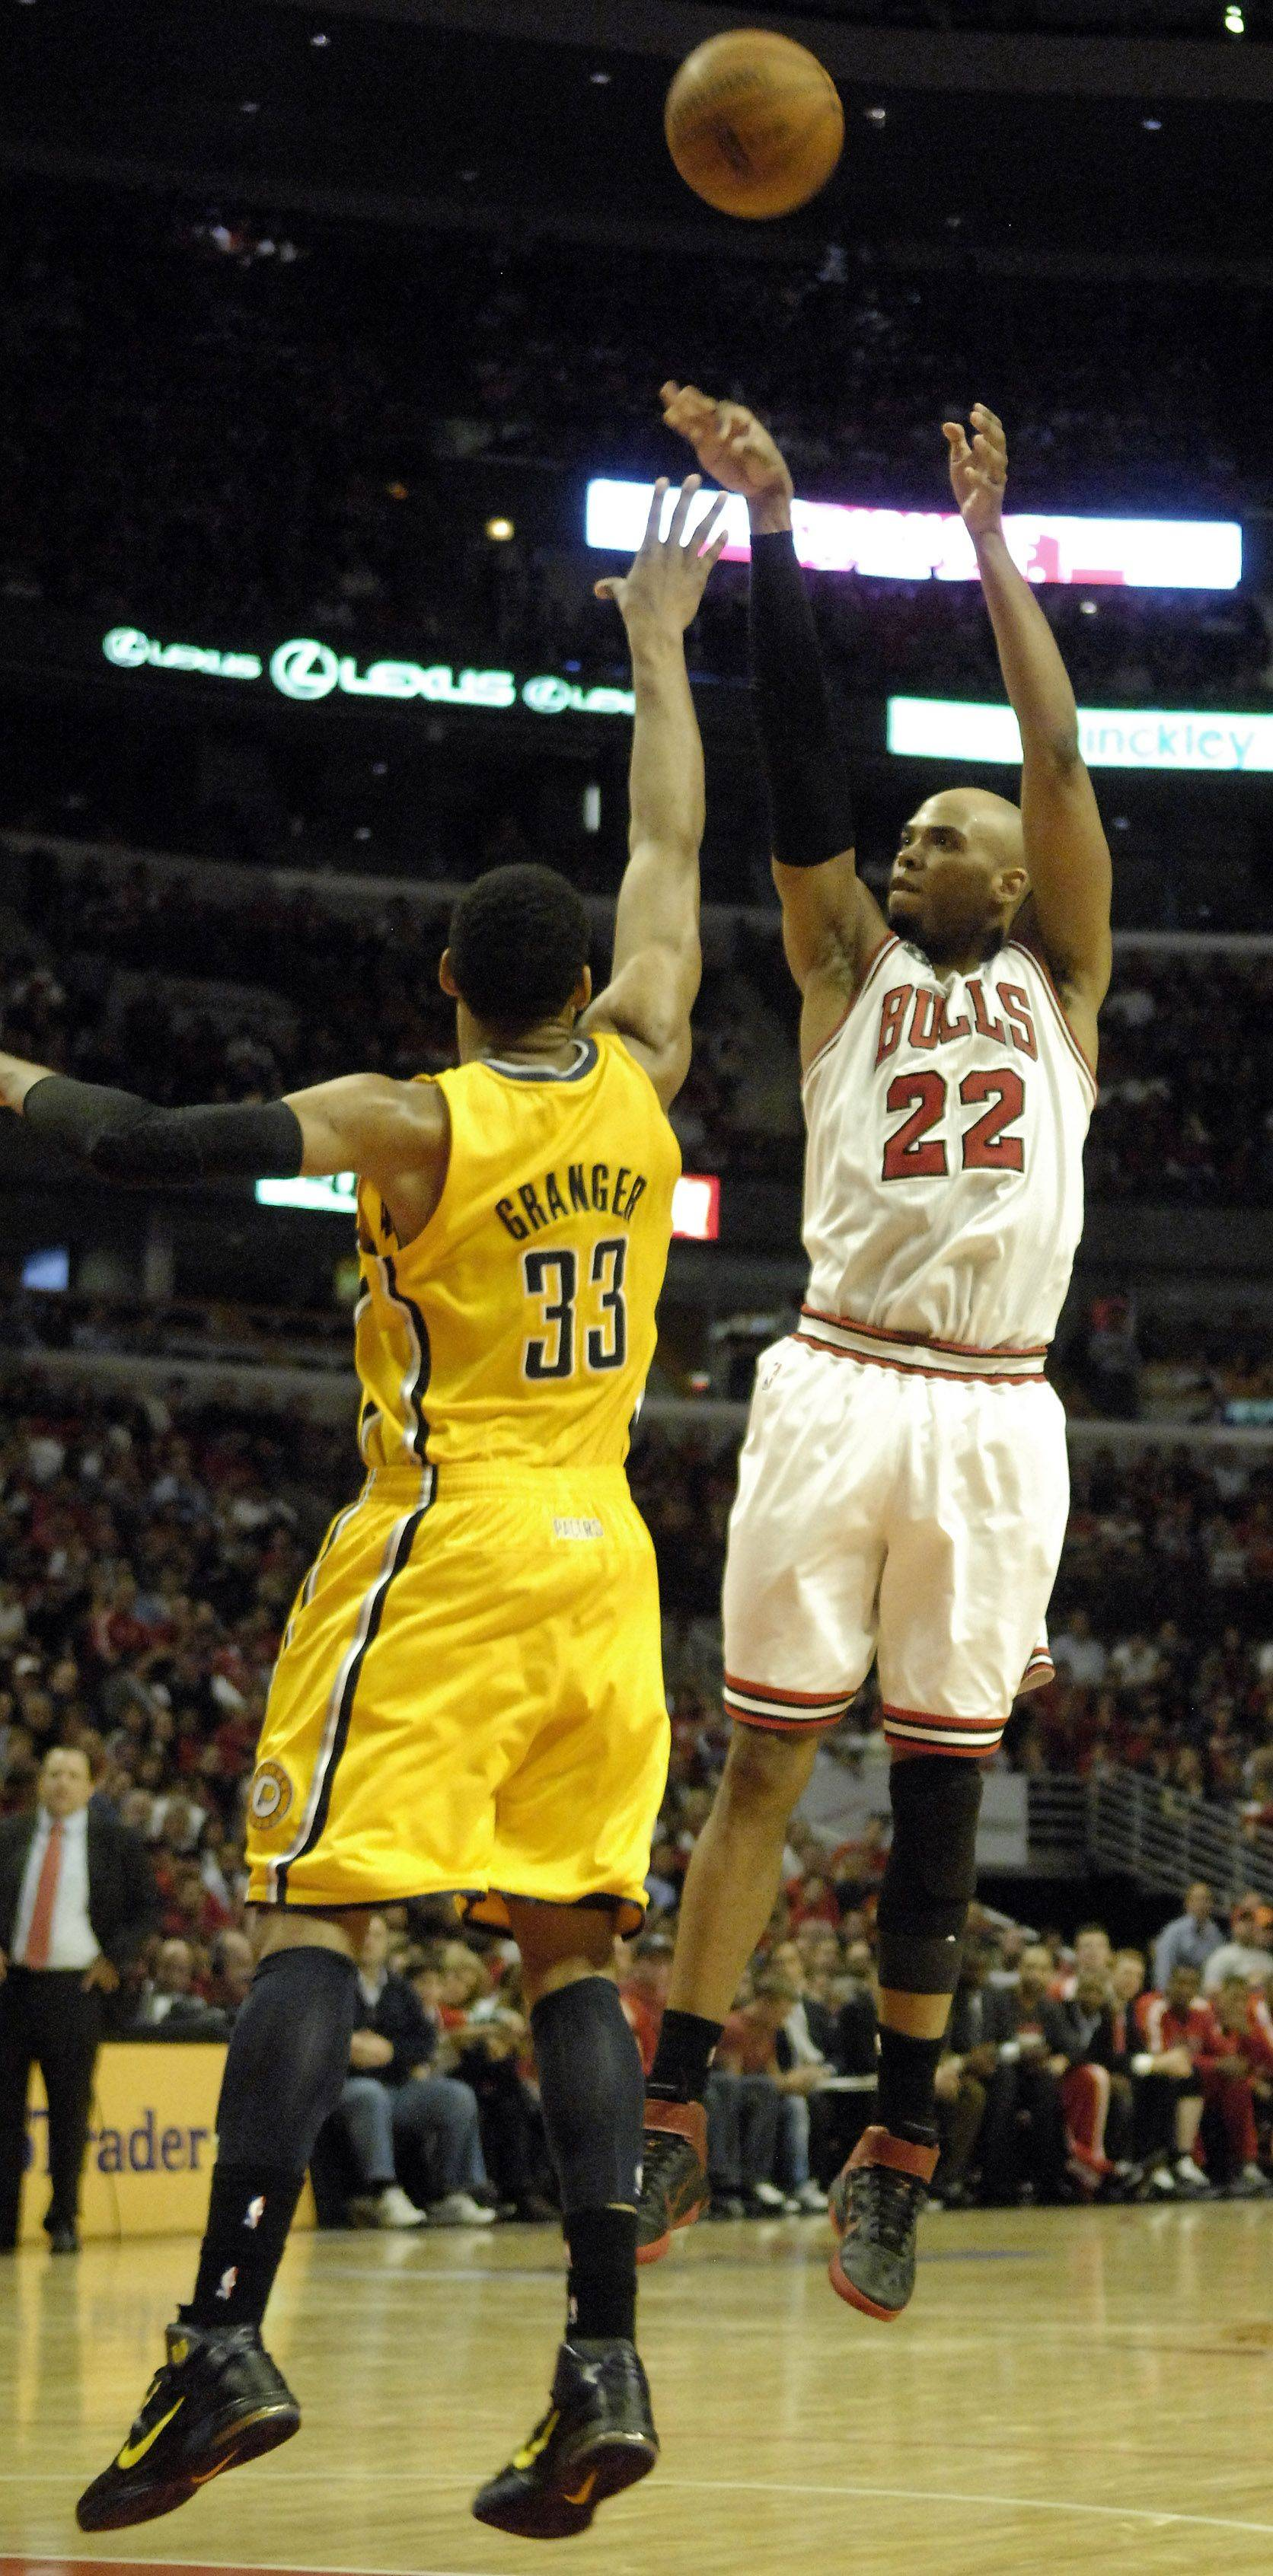 Bulls forward Taj Gibson scores a jump shot over Pacers small forward Danny Granger in Chicago Tuesday.